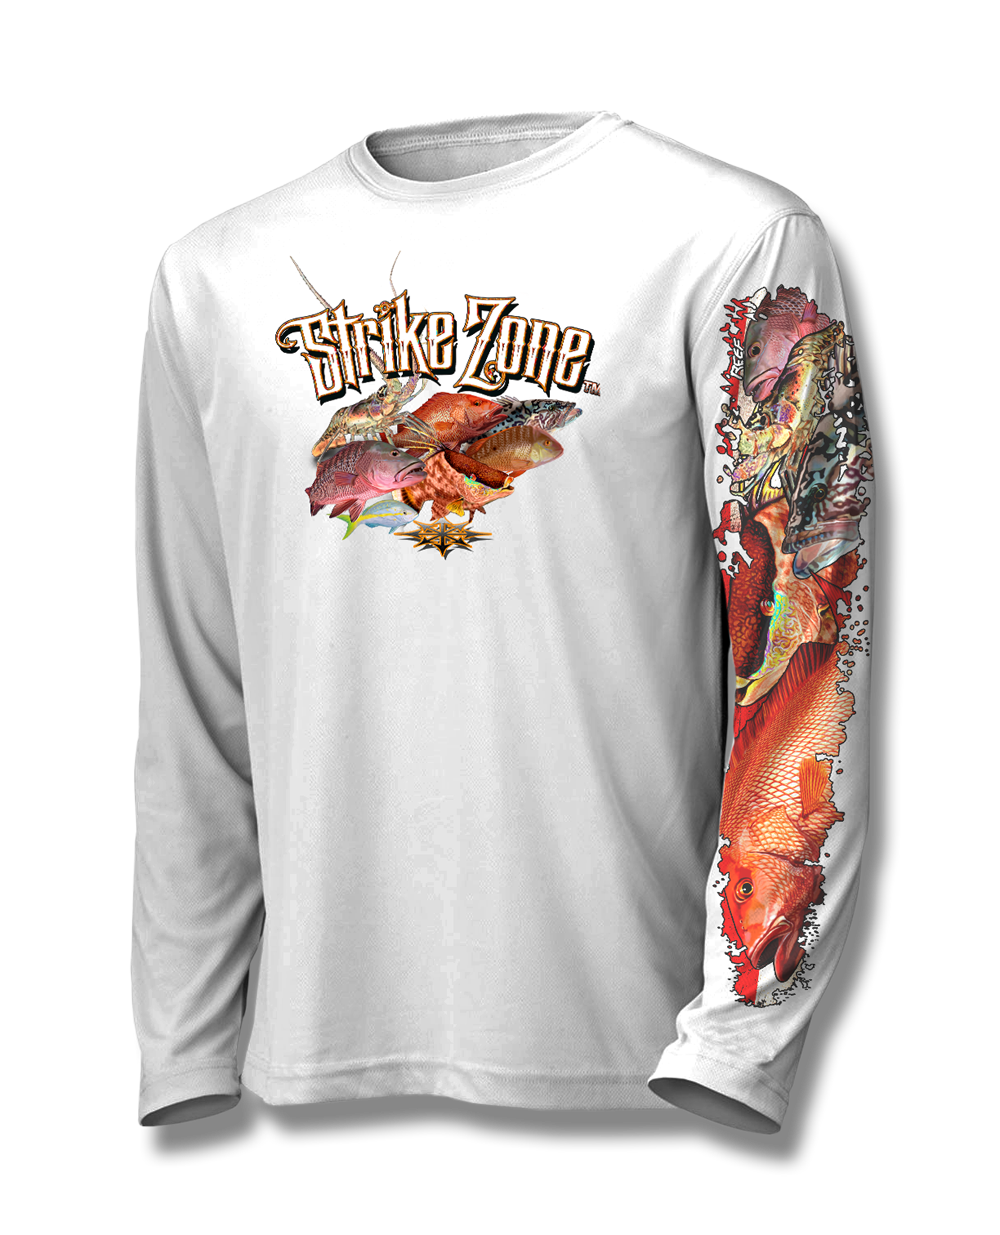 sz-reef-slam-jason-mathias-shirts.png